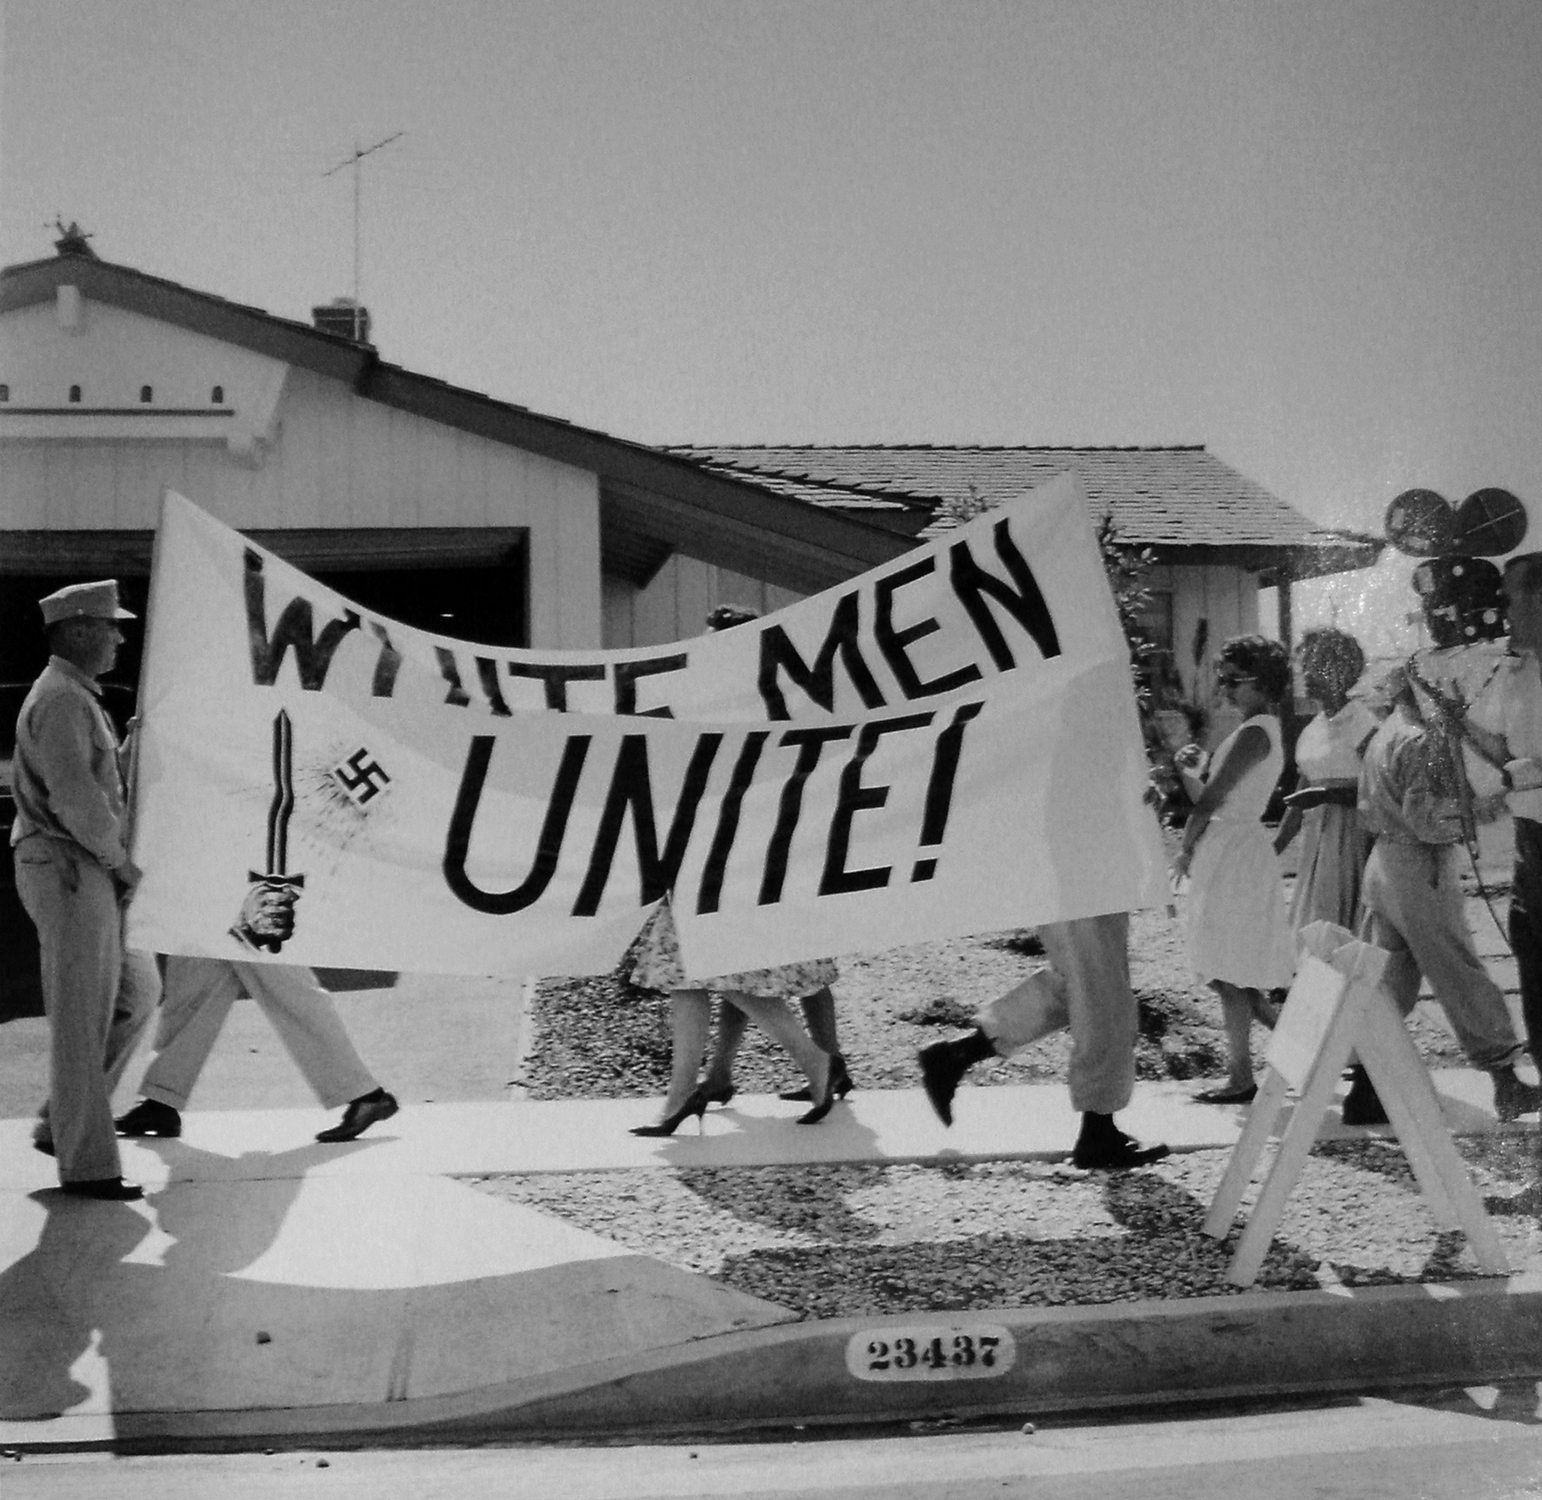 Charles Brittin  Untitled (Civil Rights Demonstration), Torrance, CA,  c. 1962  16 x 20 inches  Silver Gelatin Print